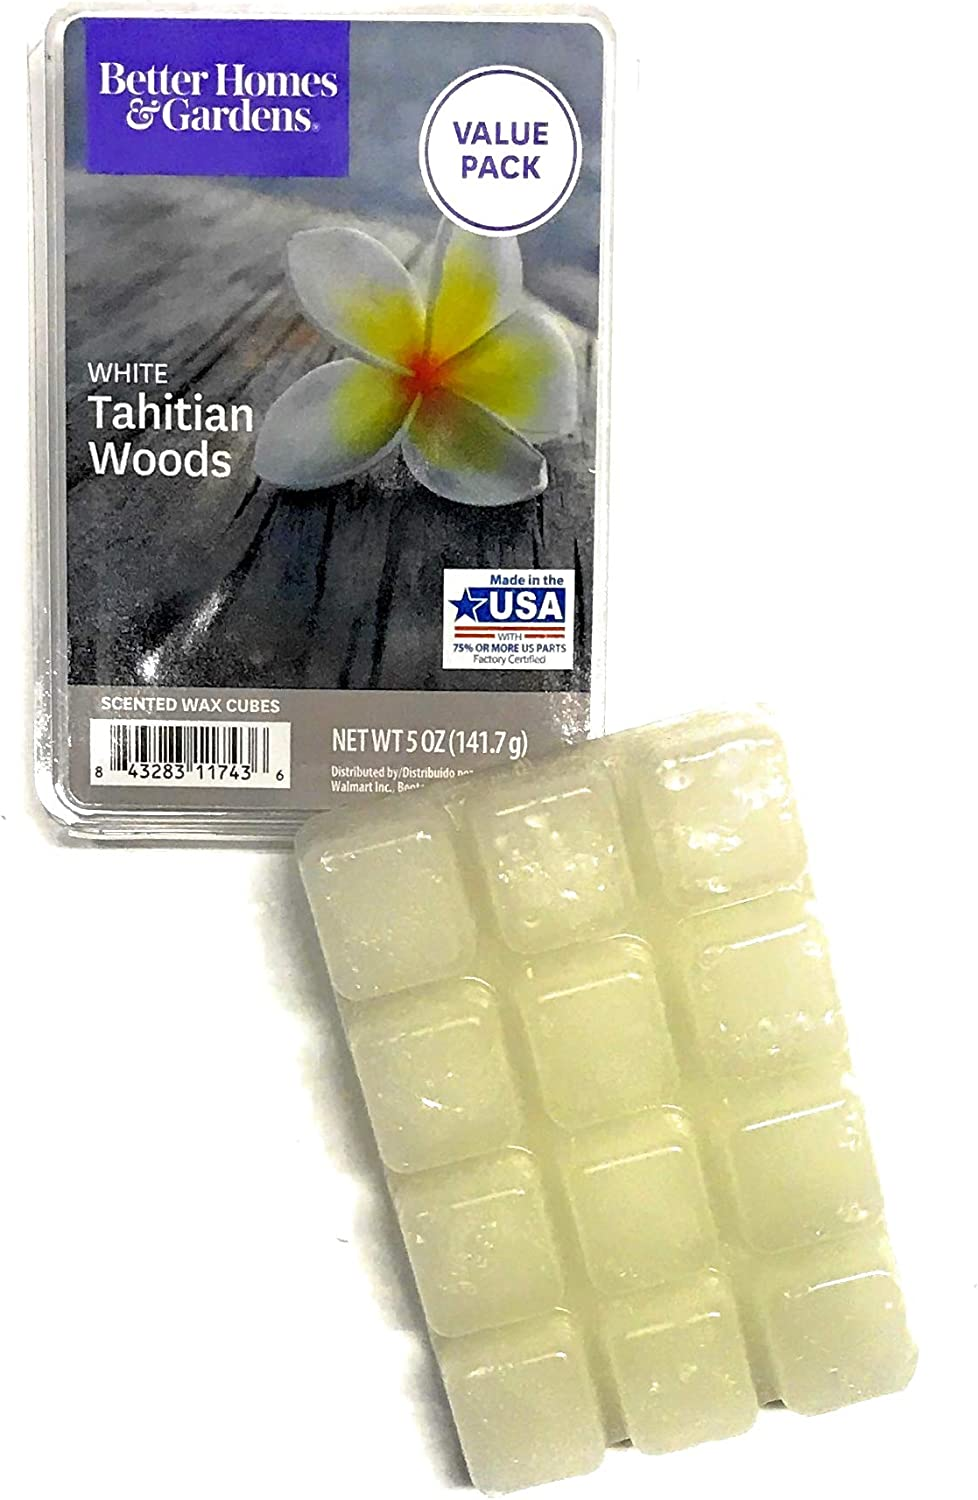 Better Homes and Gardens Scented Wax Cubes White Tahitian Woods, 5 OZ Package